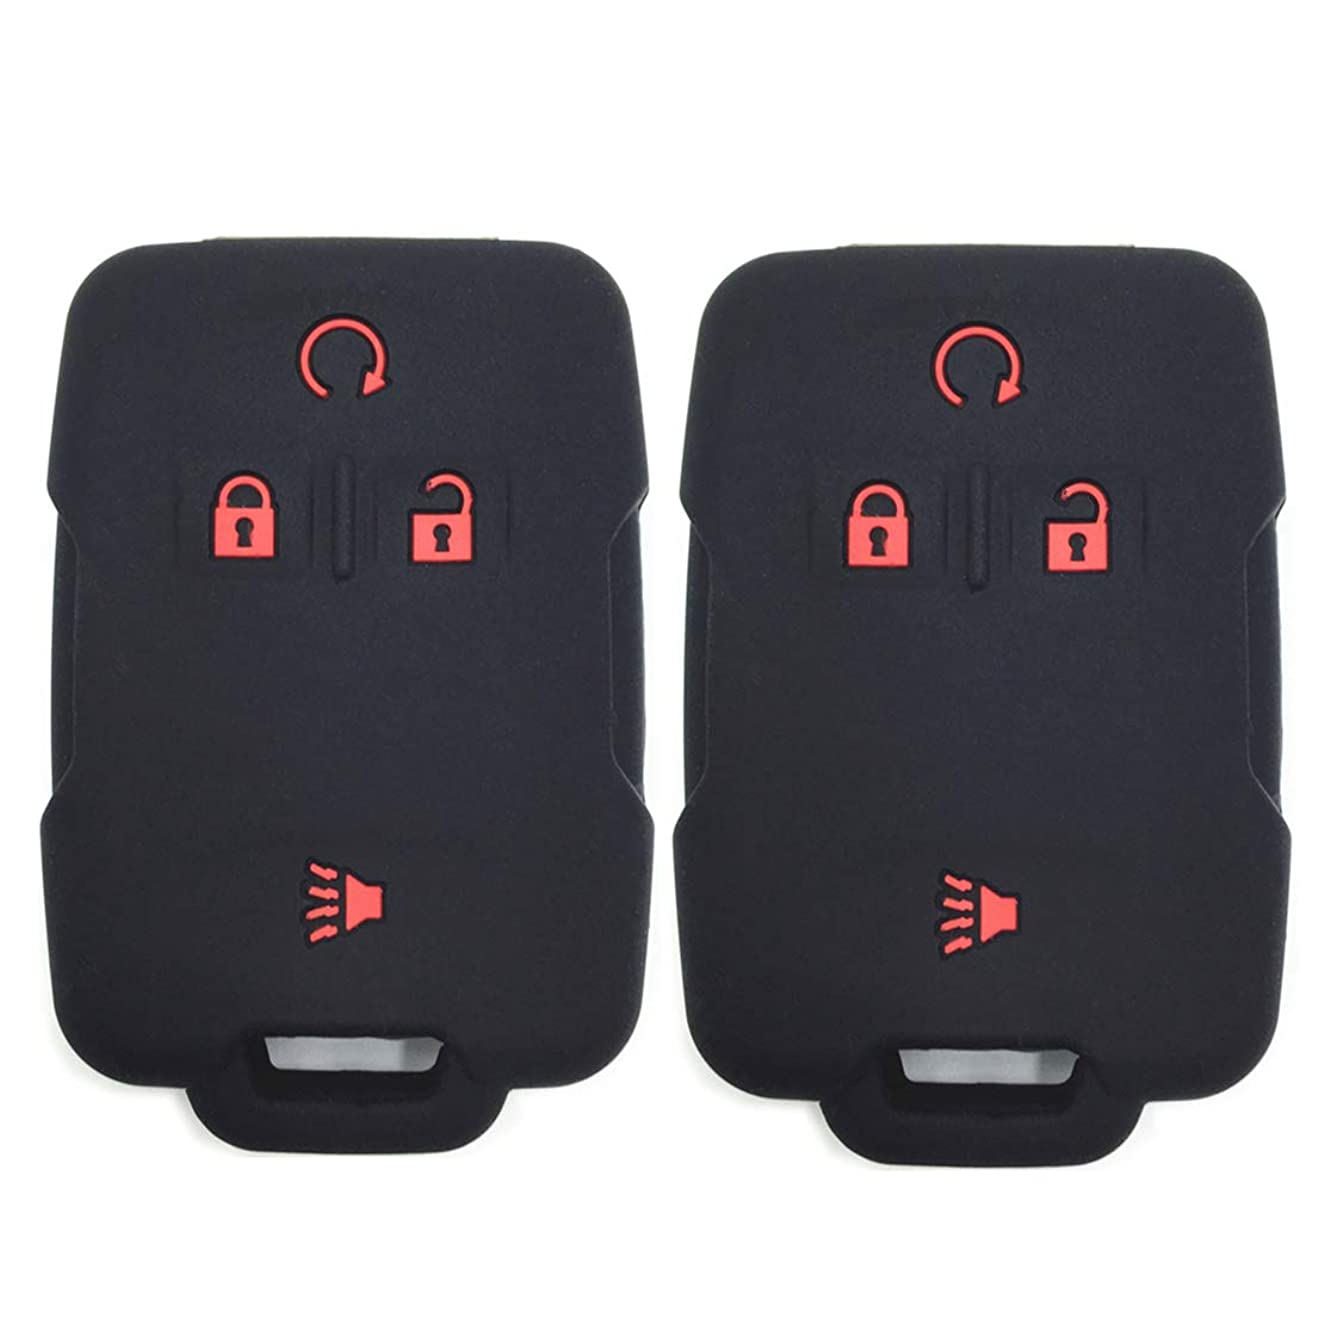 Ezzy Auto Pack 2 Black with Red Buttons Silicone Rubber Key Fob Case Key Covers Keyless Remote Jacket Skin Protector fit for Chevrolet Silverado Colorado GMC Sierra Yukon Cadillac